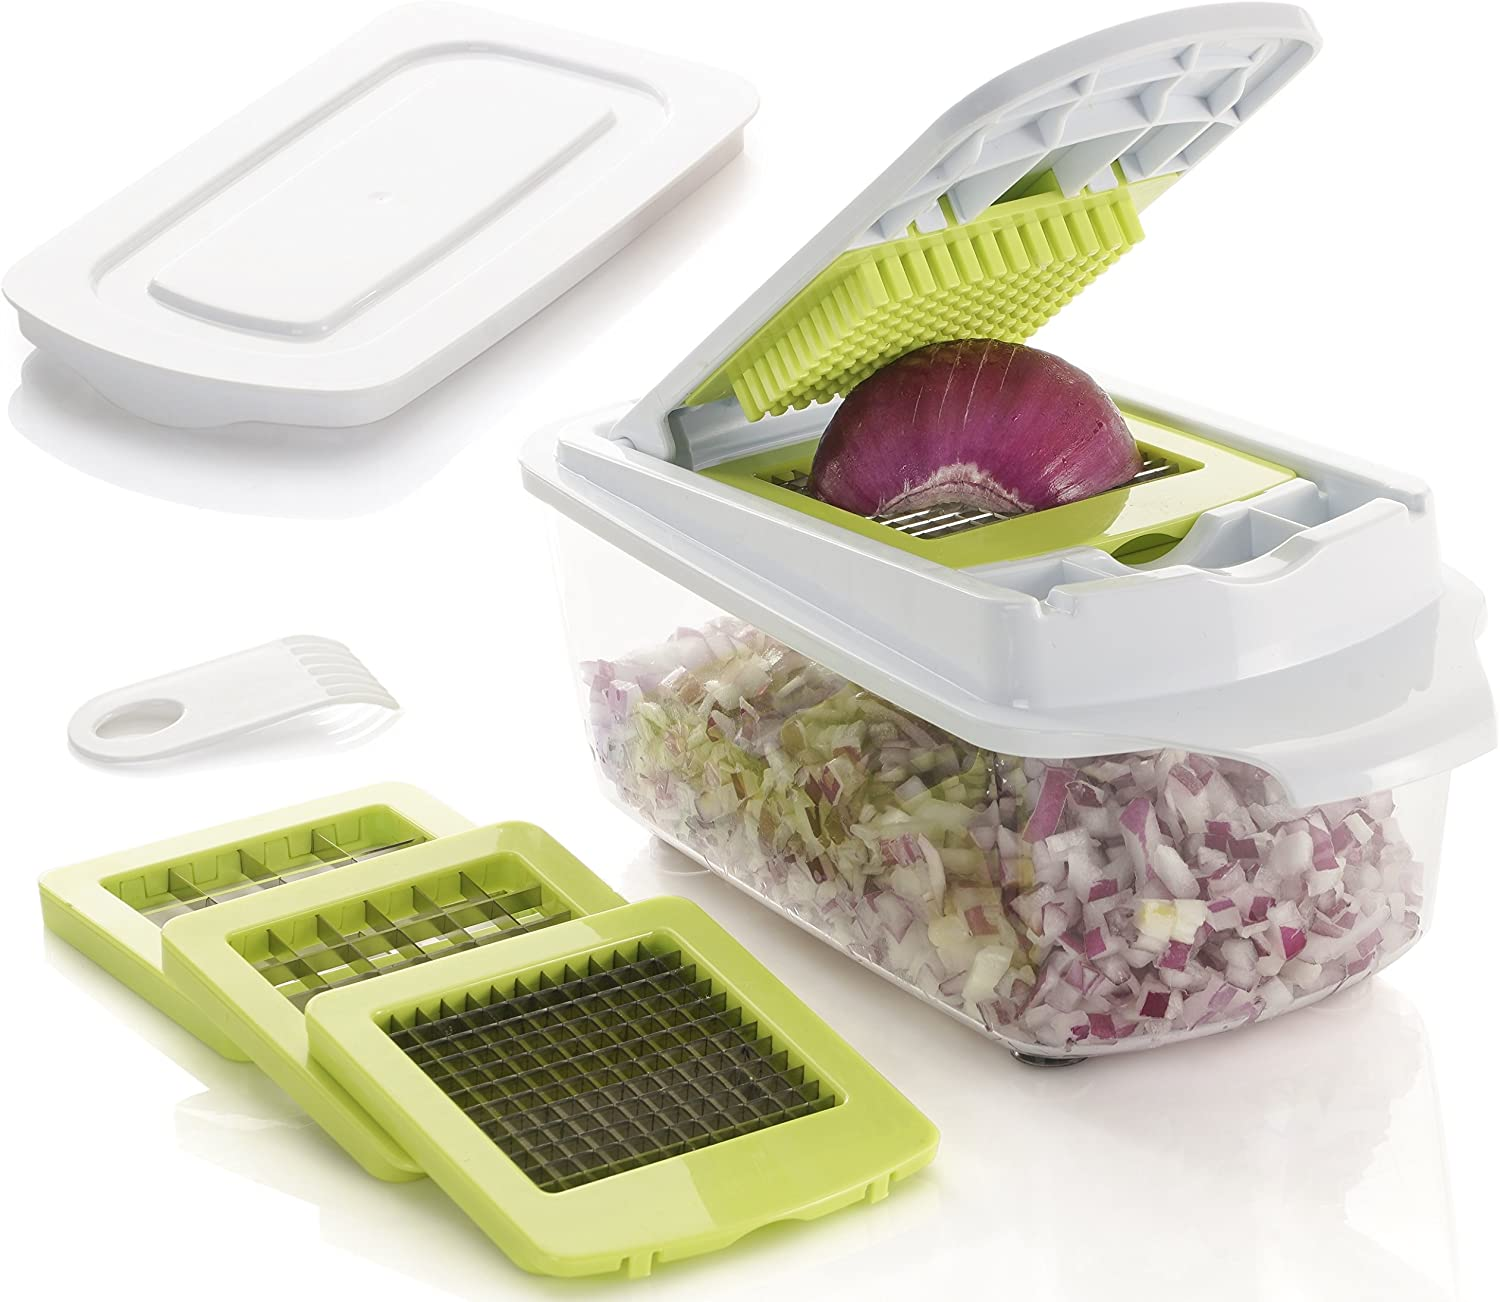 Brieftons QuickPush Food Chopper: Strongest & 200% More Container Capacity